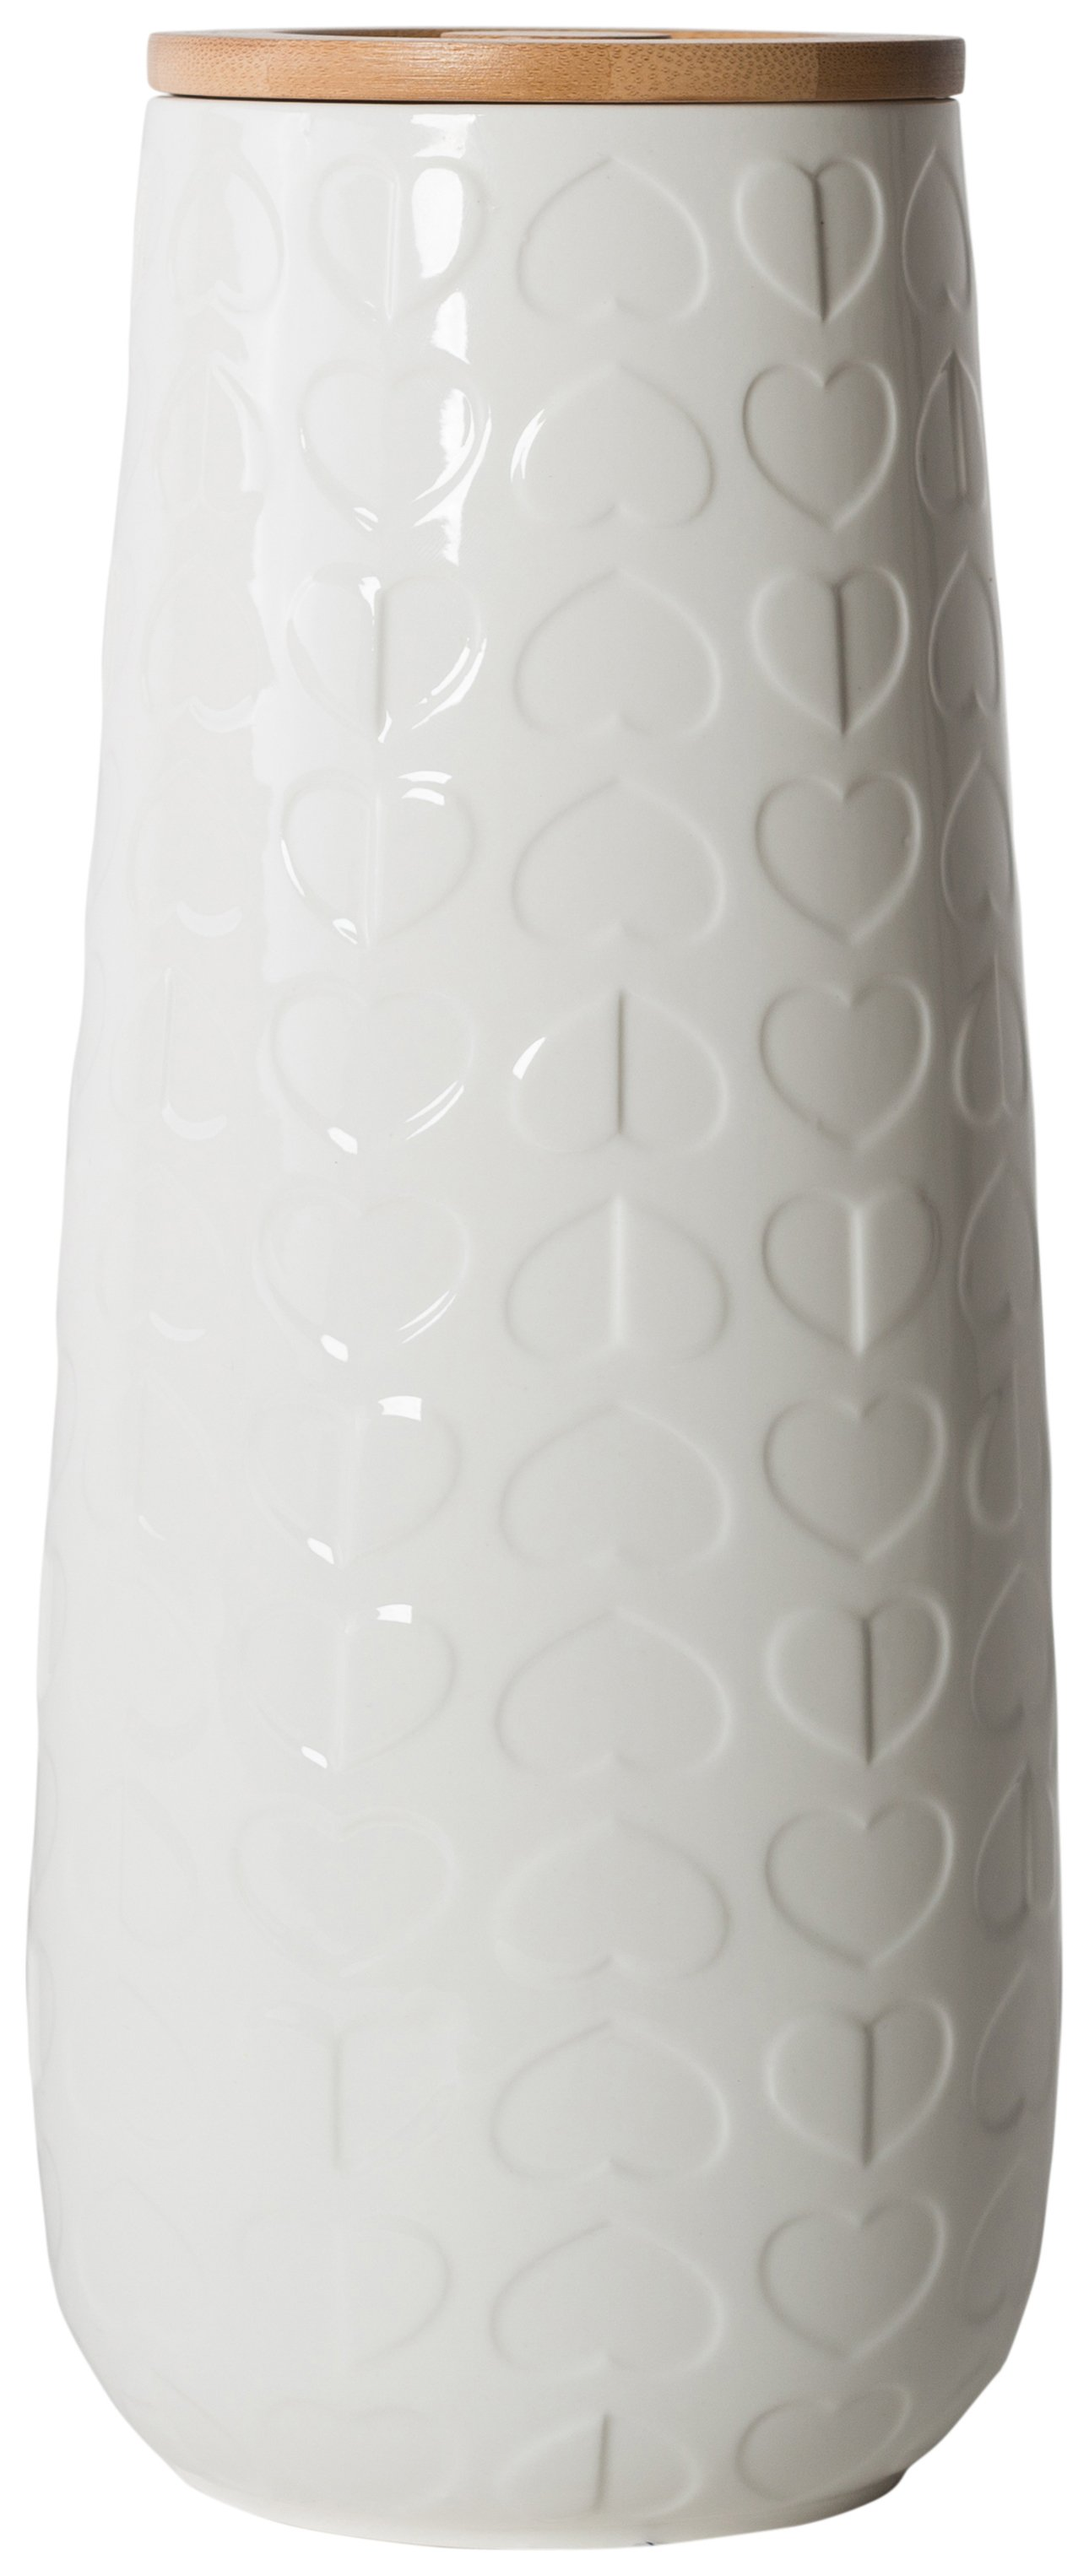 Image of Beau and Elliot Confetti - White Pasta Jar